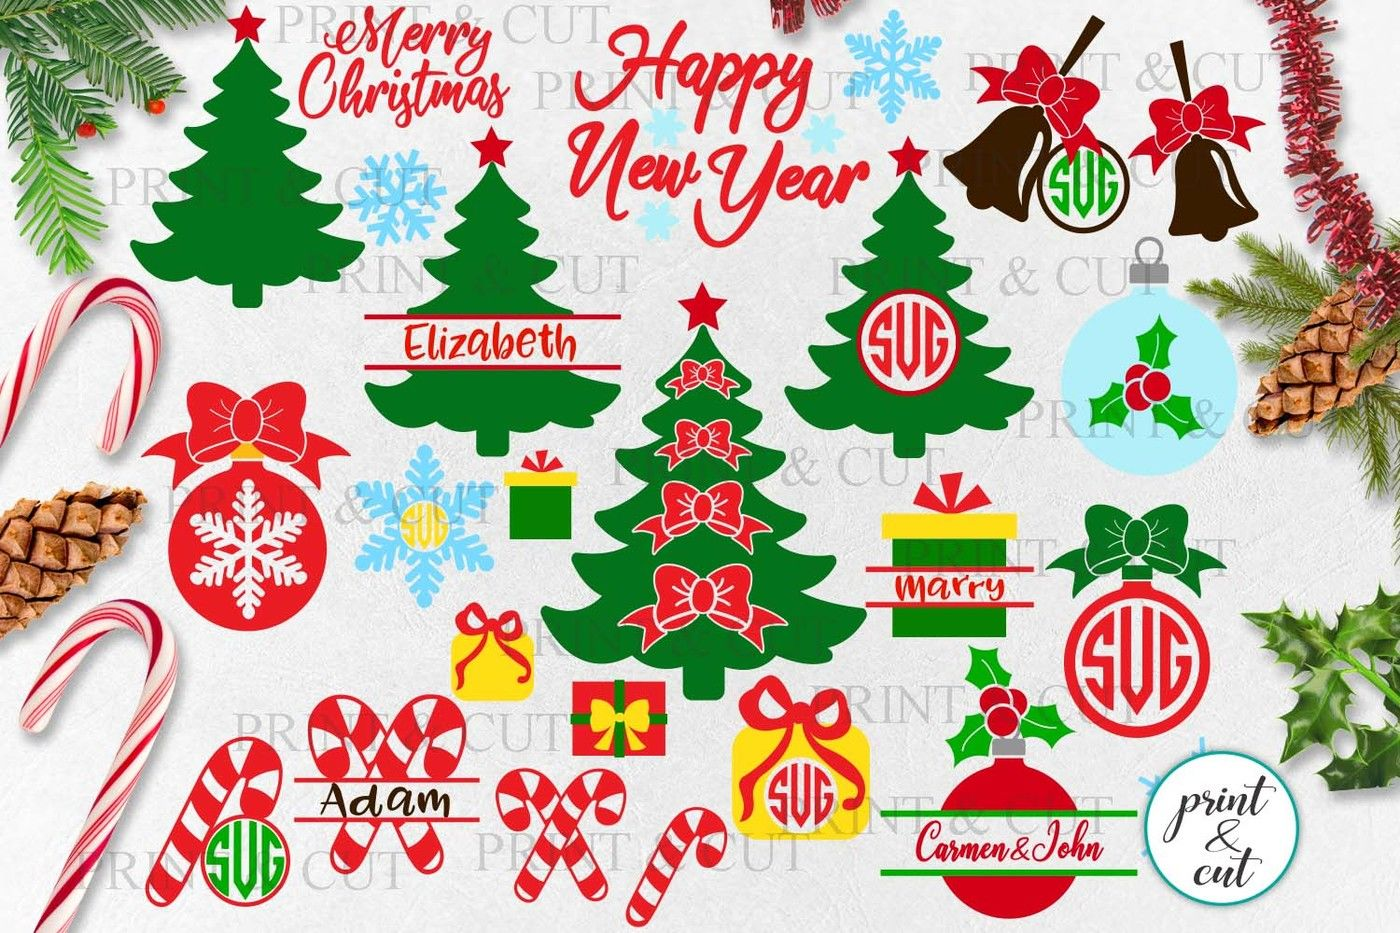 Christmas Elements Bundle Tree Baubles Bell Candy Cane Svg Dxf For